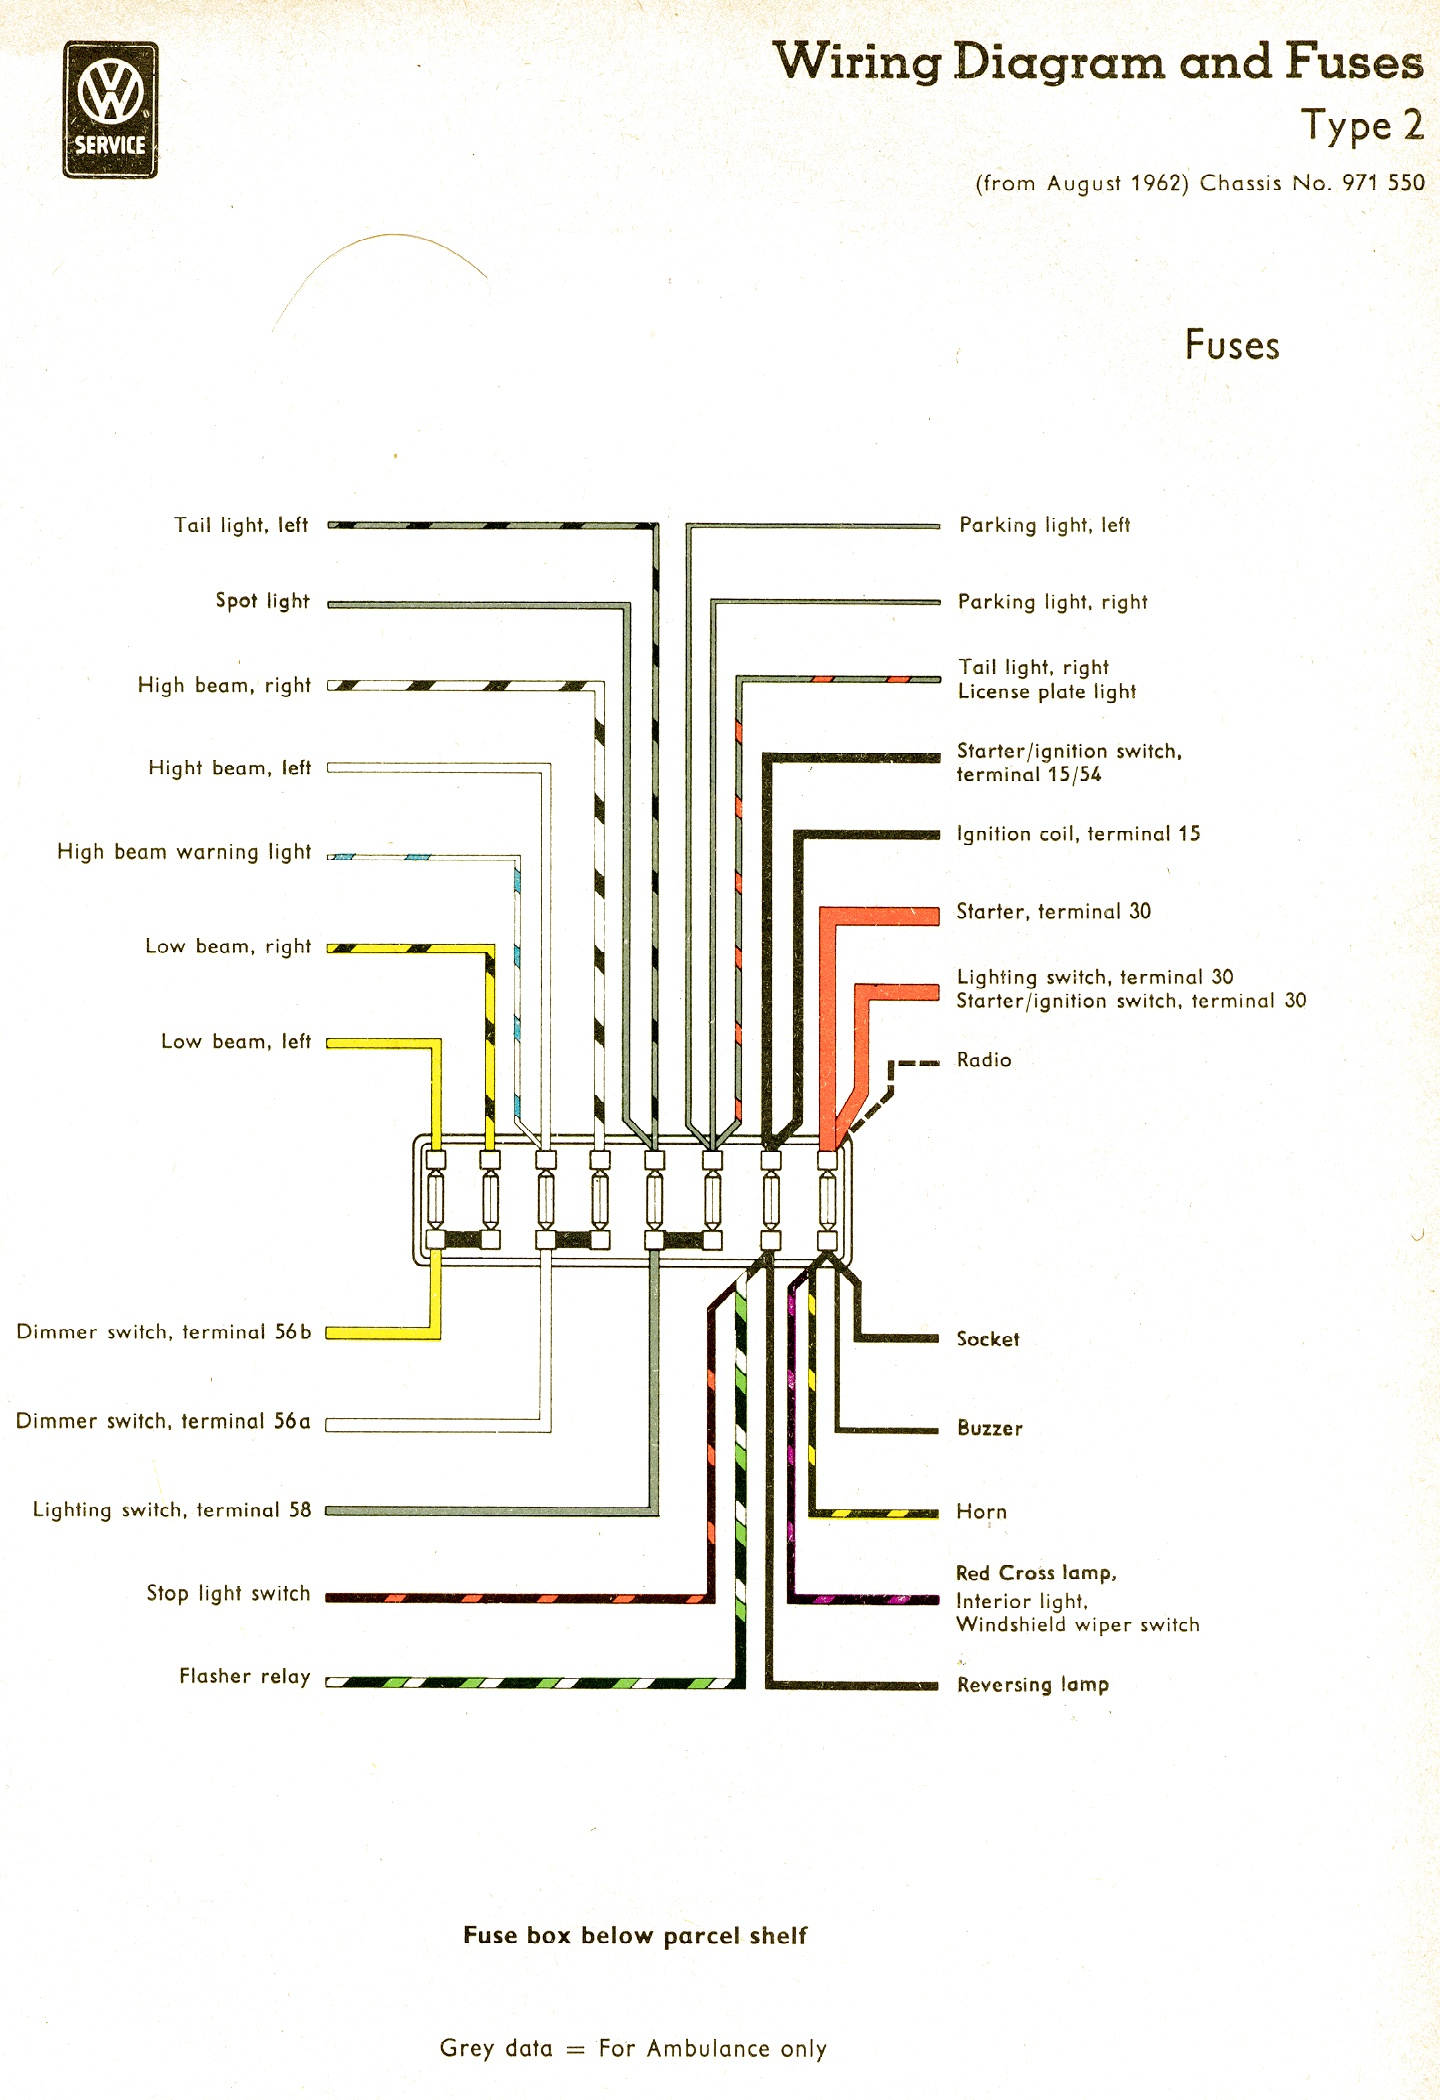 bus 62 fuse vw wiring diagrams fuse wiring diagram at nearapp.co